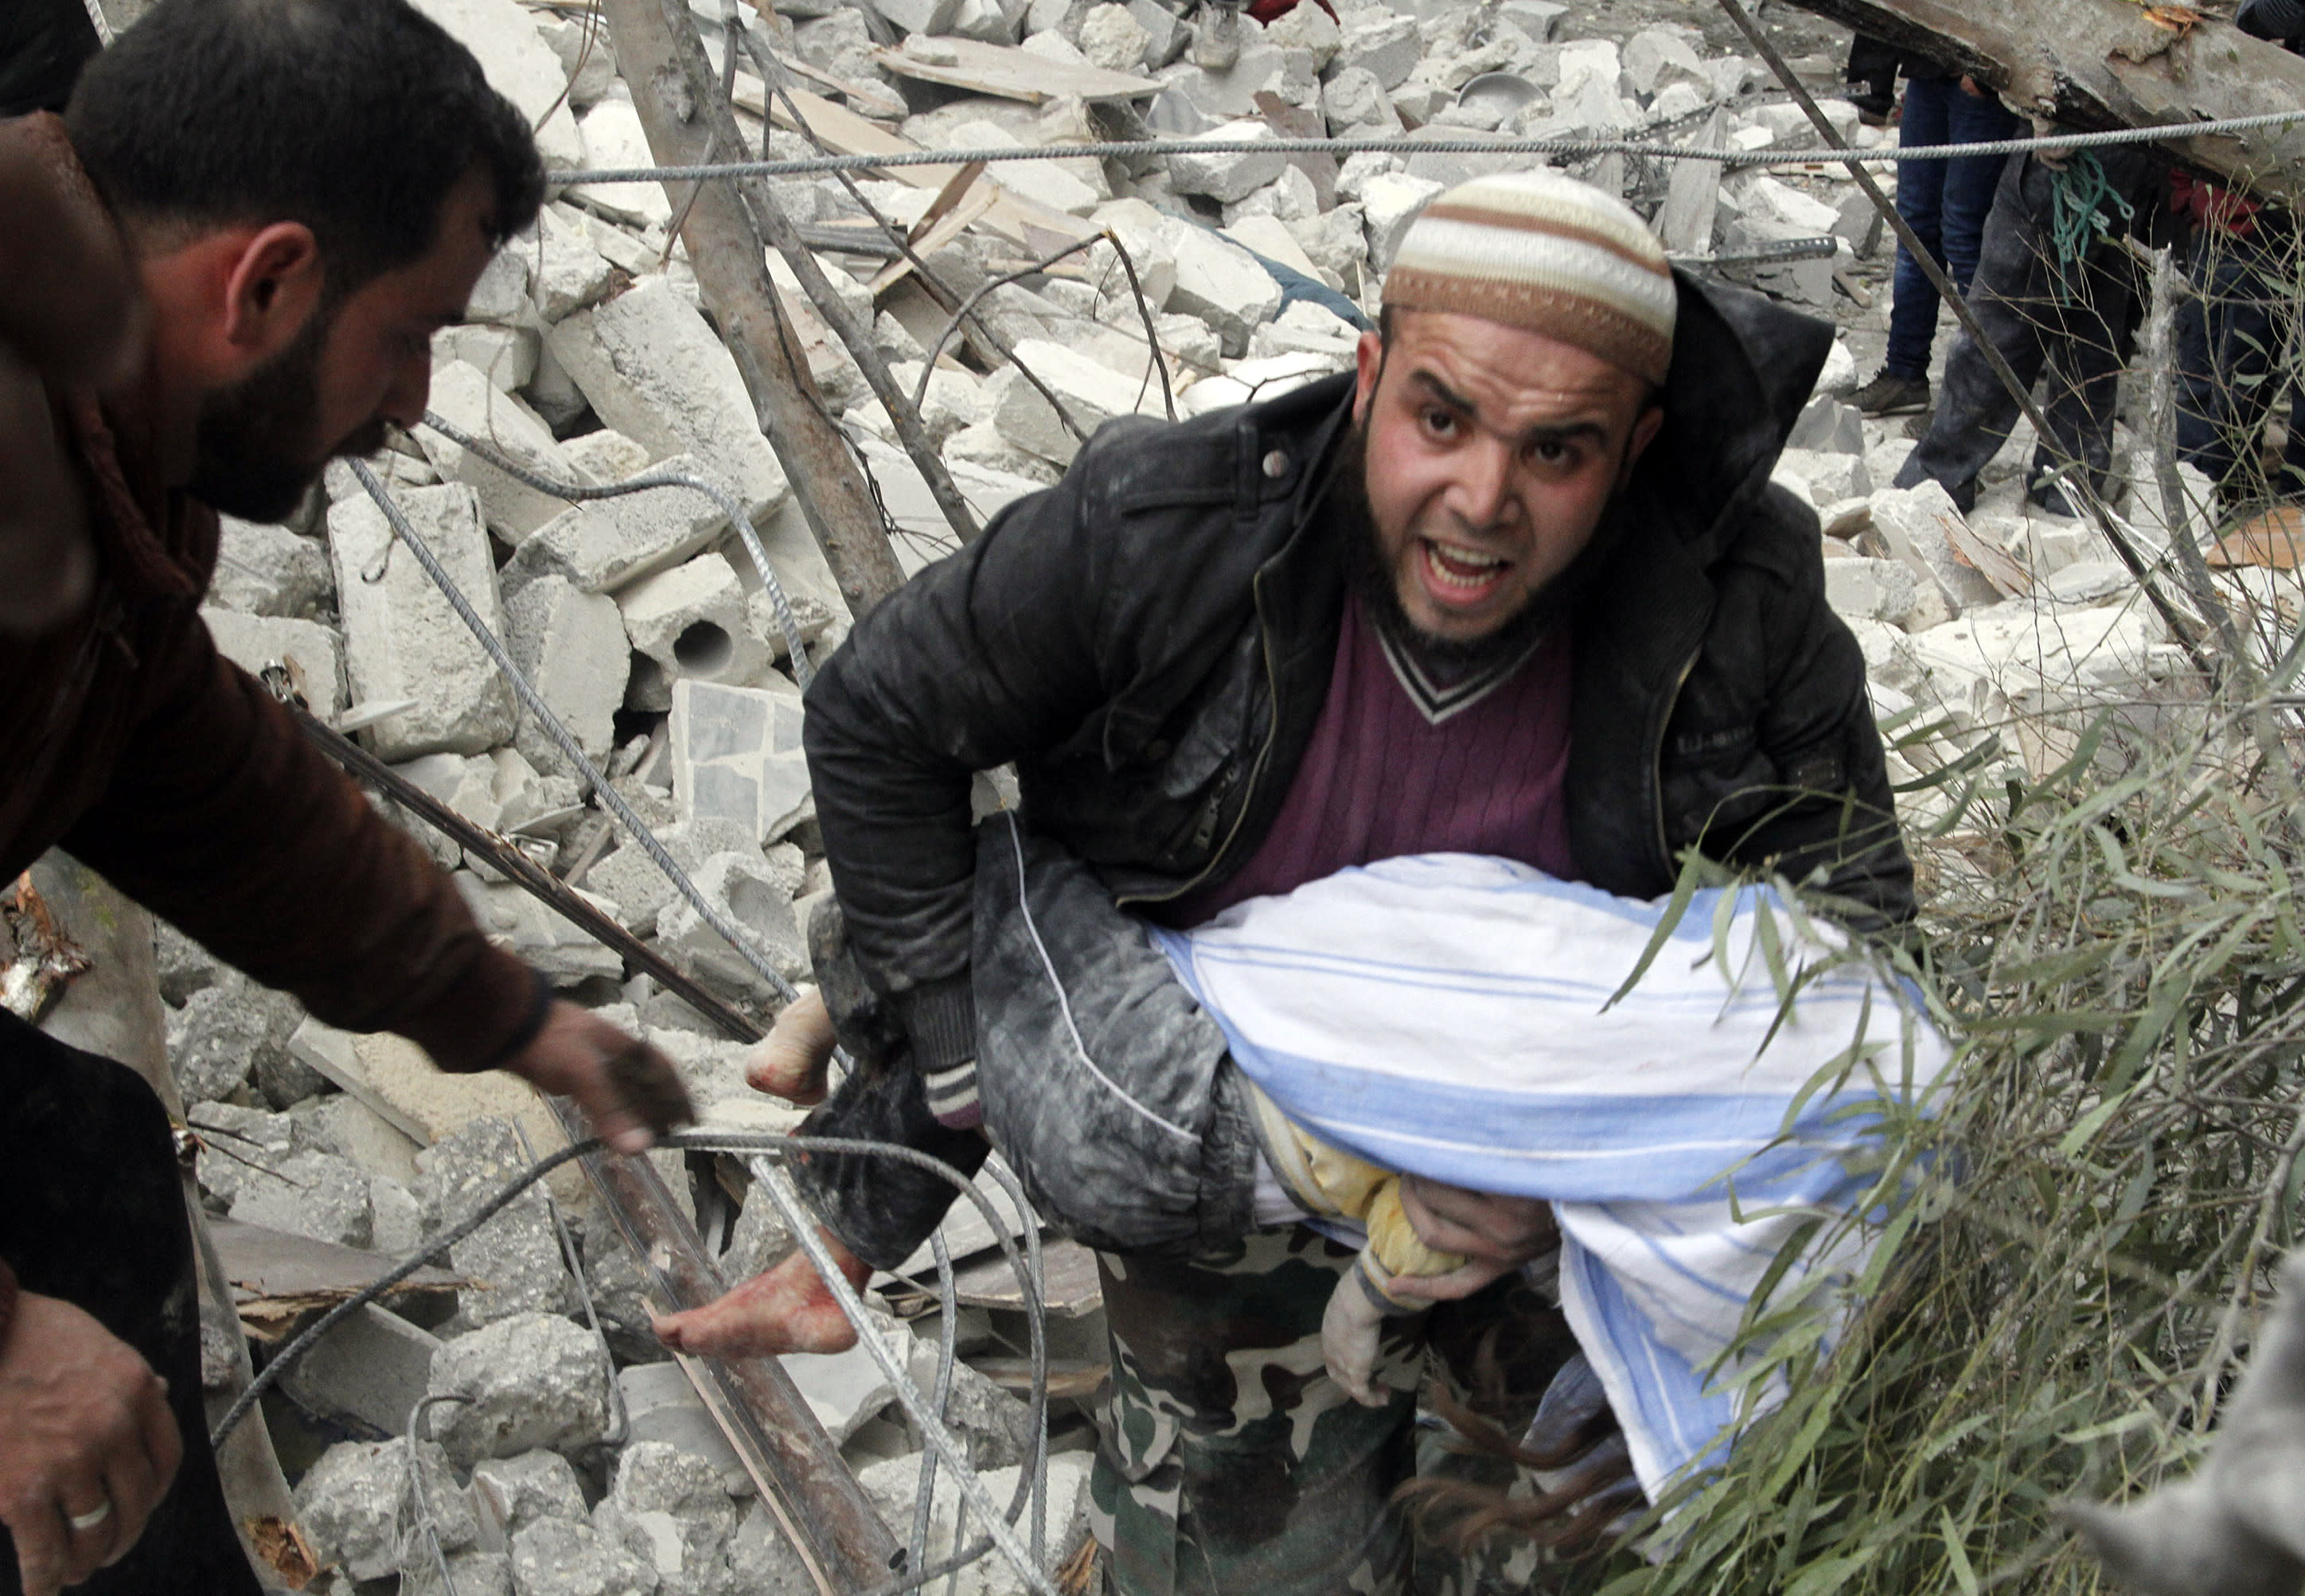 A Syrian man carries a child's body after a government airstrike hit the neighborhood of Ansari, in Aleppo, Syria, Sunday, Feb. 3, 2013. The Britain-based activist group Syrian Observatory for Human Rights, which opposes the regime, said government troops bombarded a building in Aleppo's rebel-held neighborhood of Eastern Ansari that killed over 10 people, including at least five children. (AP Photo/Abdullah al-Yassin)